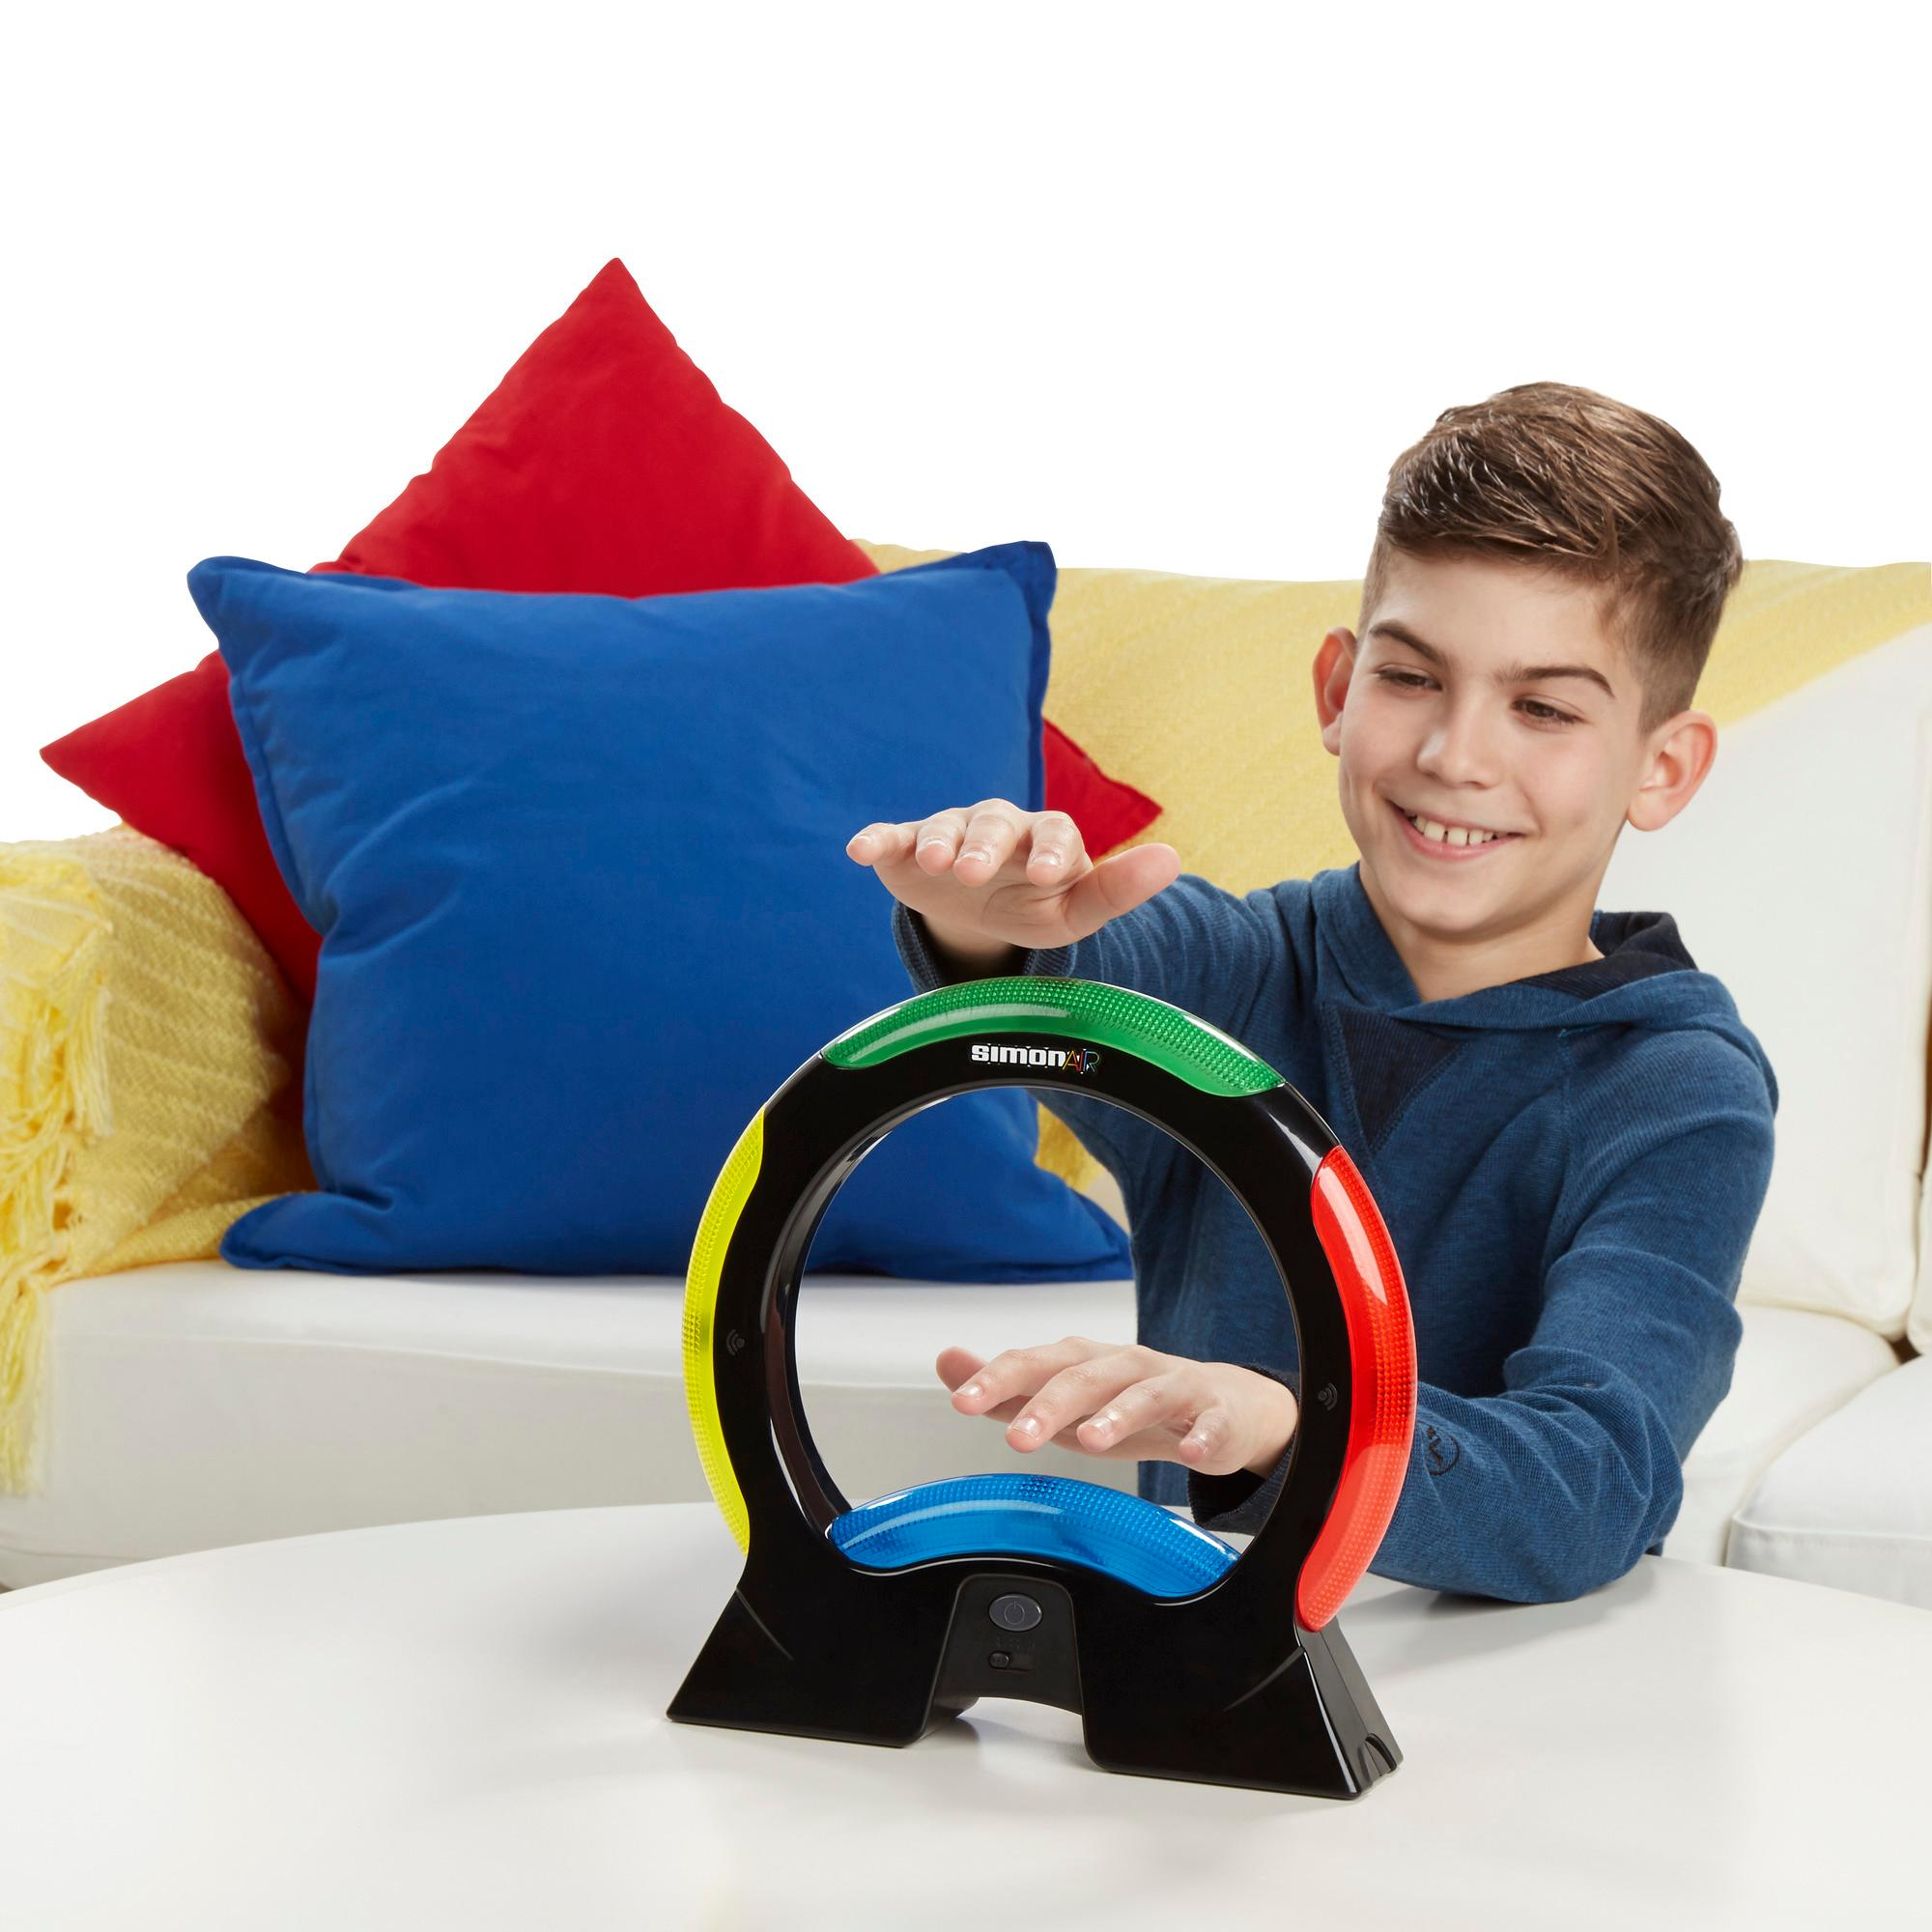 Toys For Boys 15 Years And Up : Amazon hasbro simon air game touchless technology